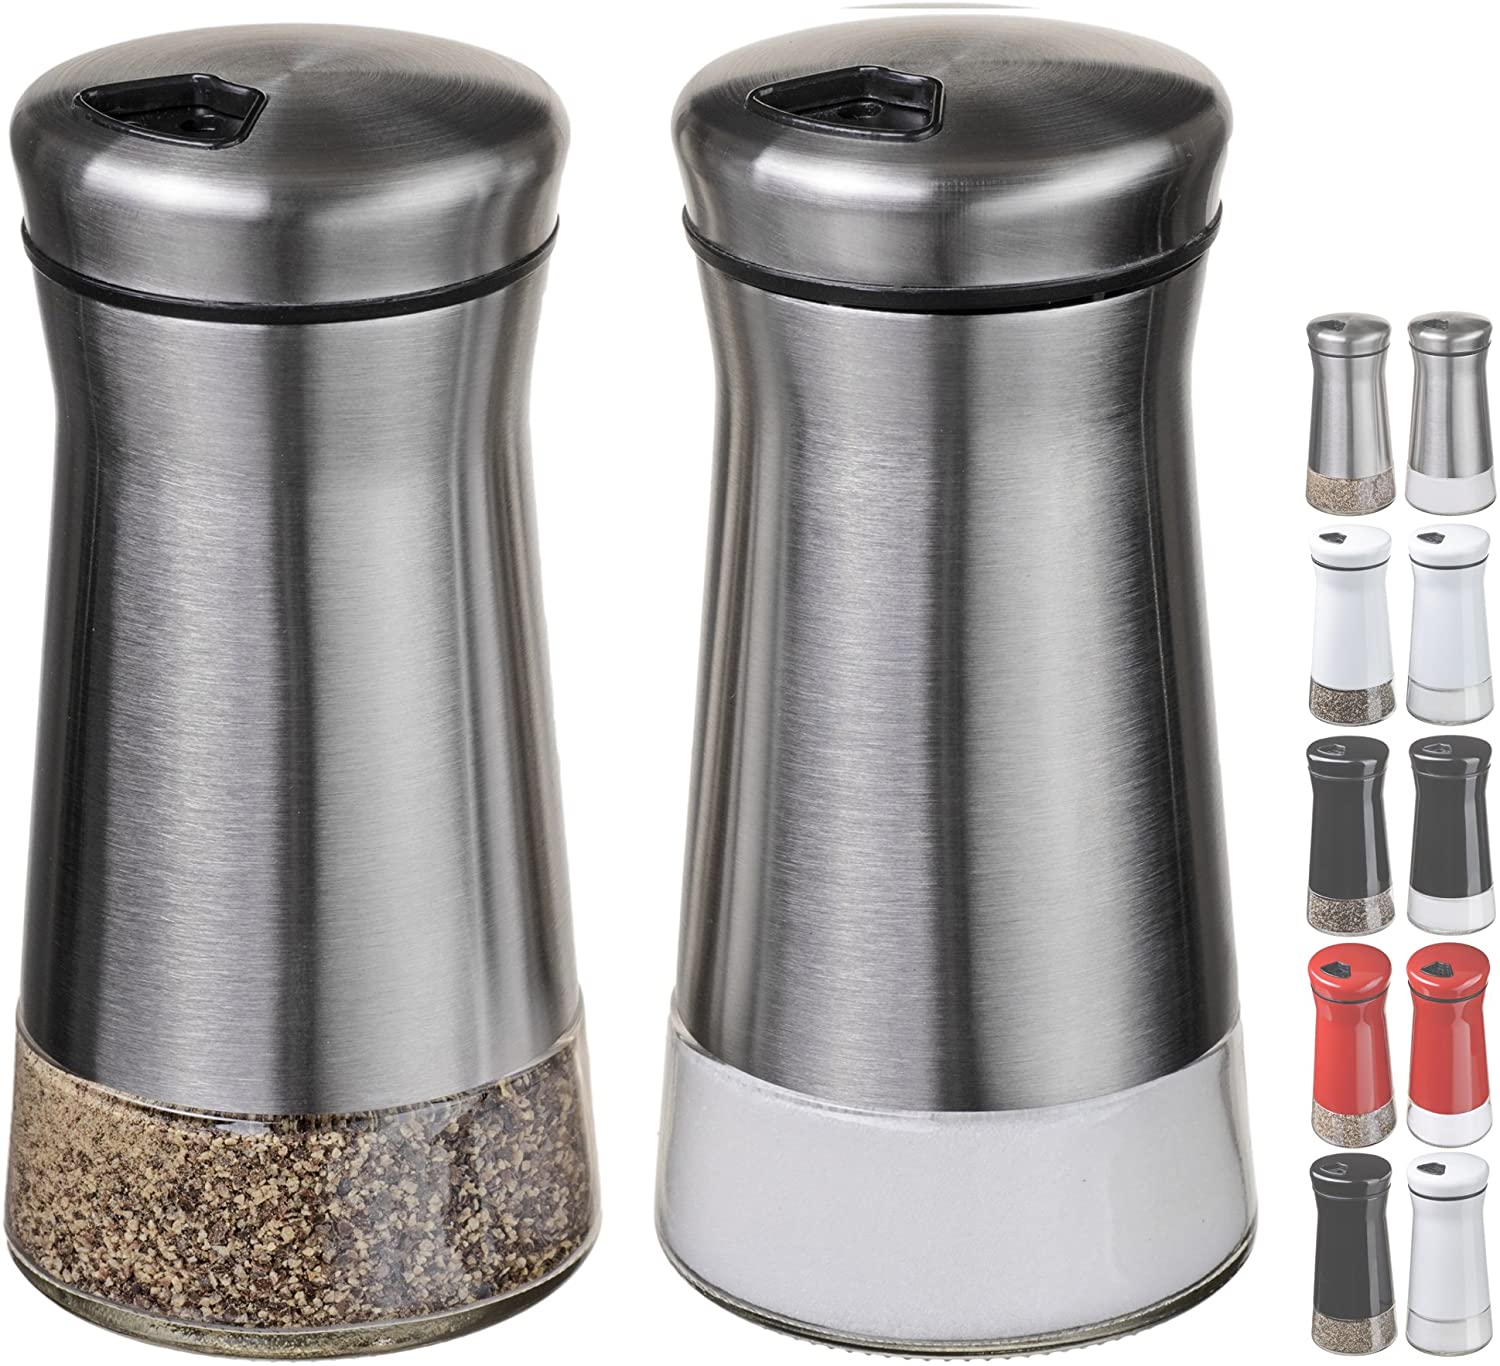 CHEFVANTAGE Regular discount Salt and Pepper Shakers New product Adjustable - Holes with Set